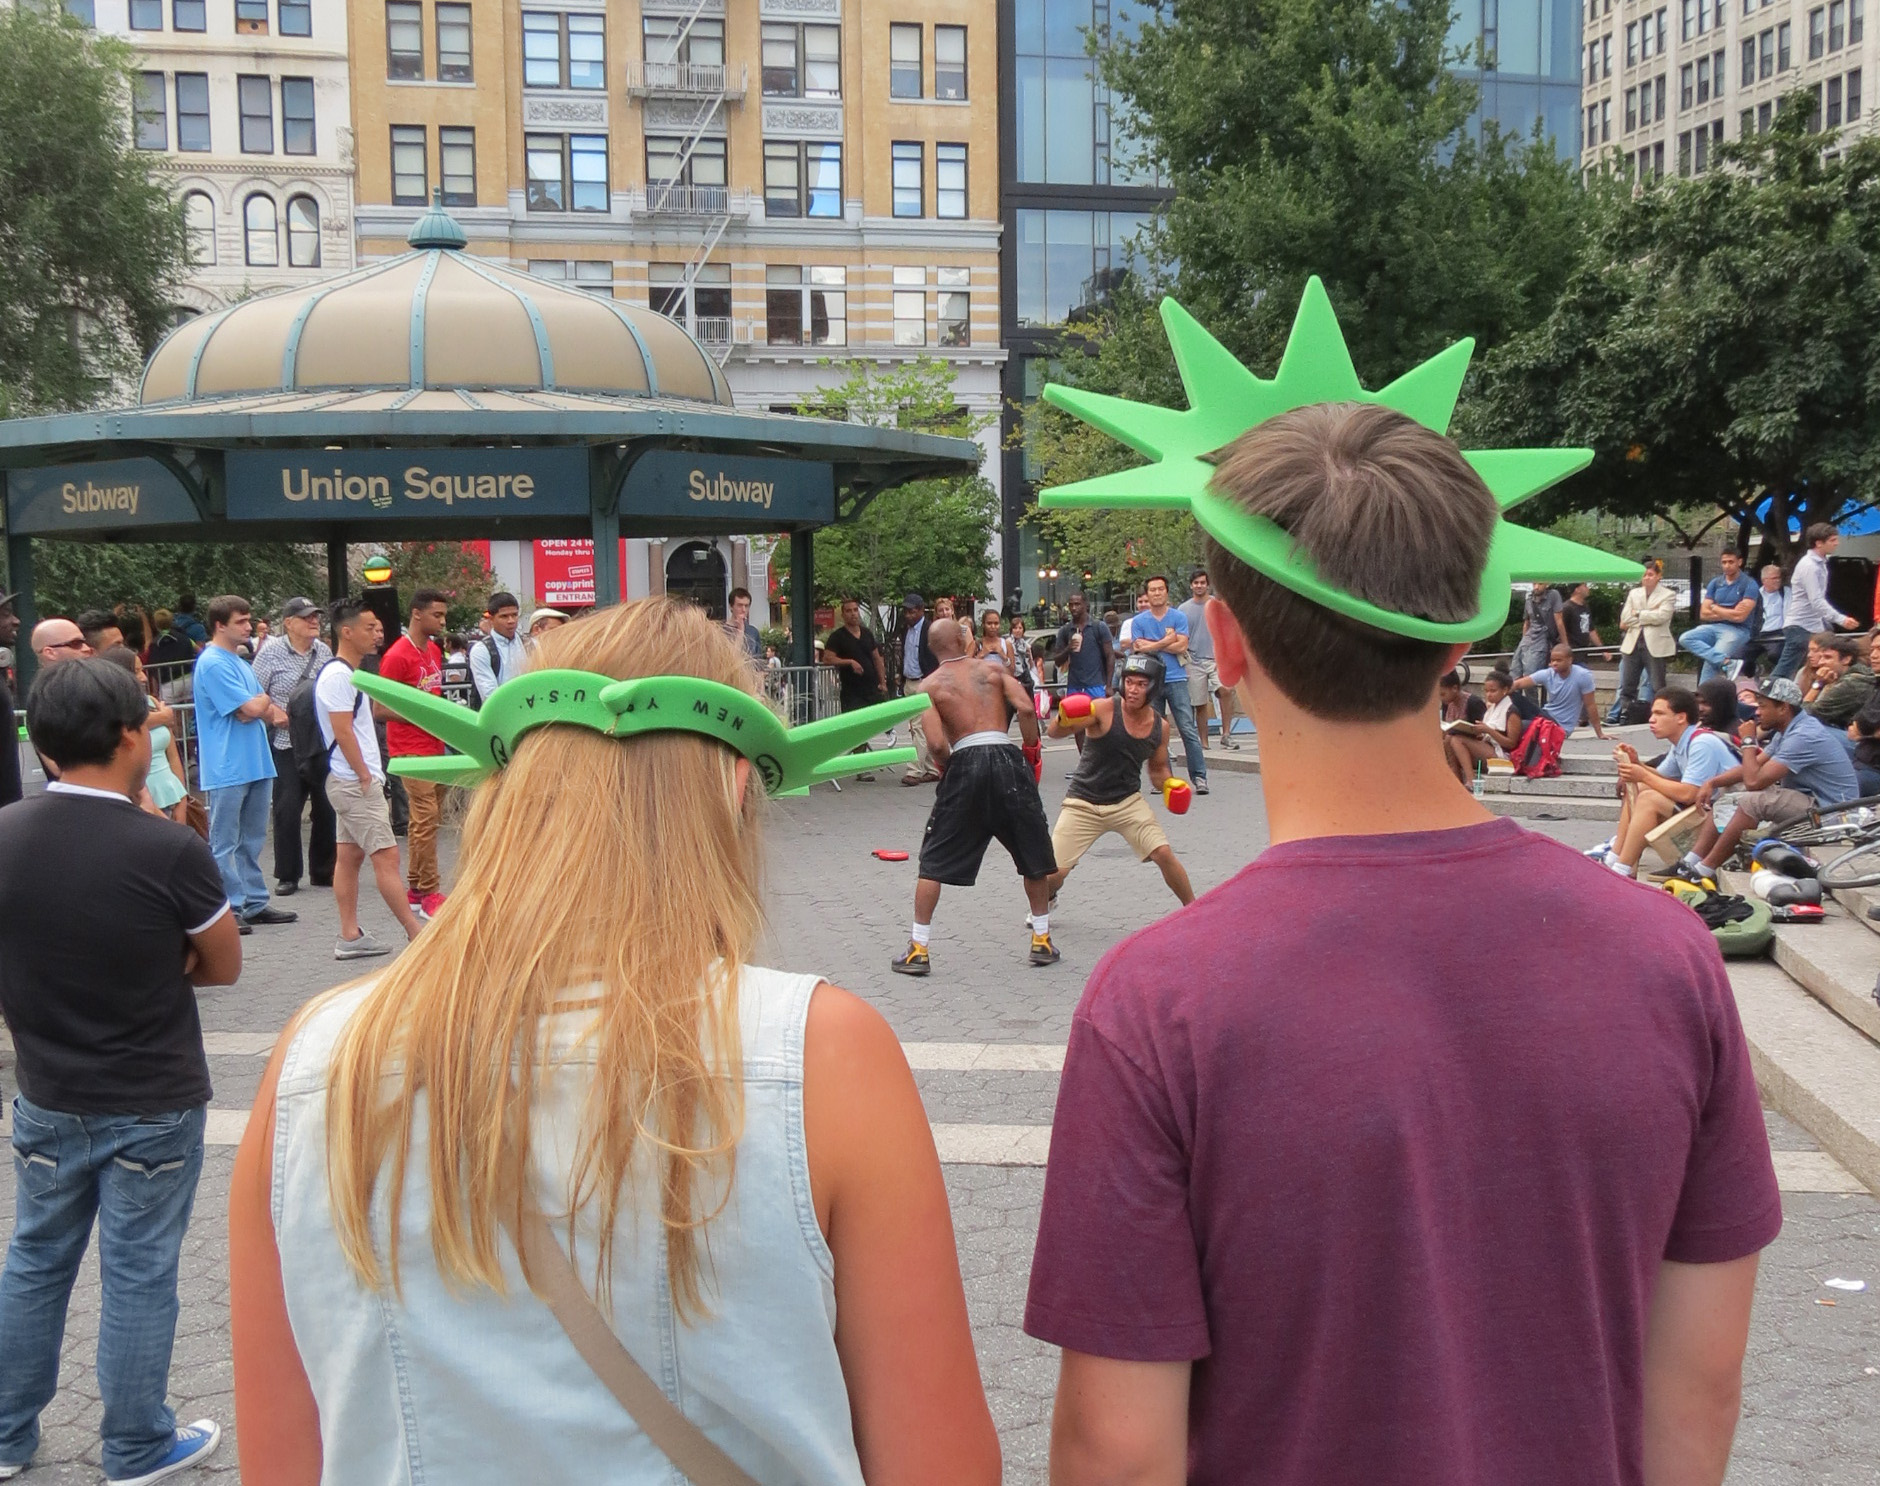 Tourists in Liberty crowns watch Fight